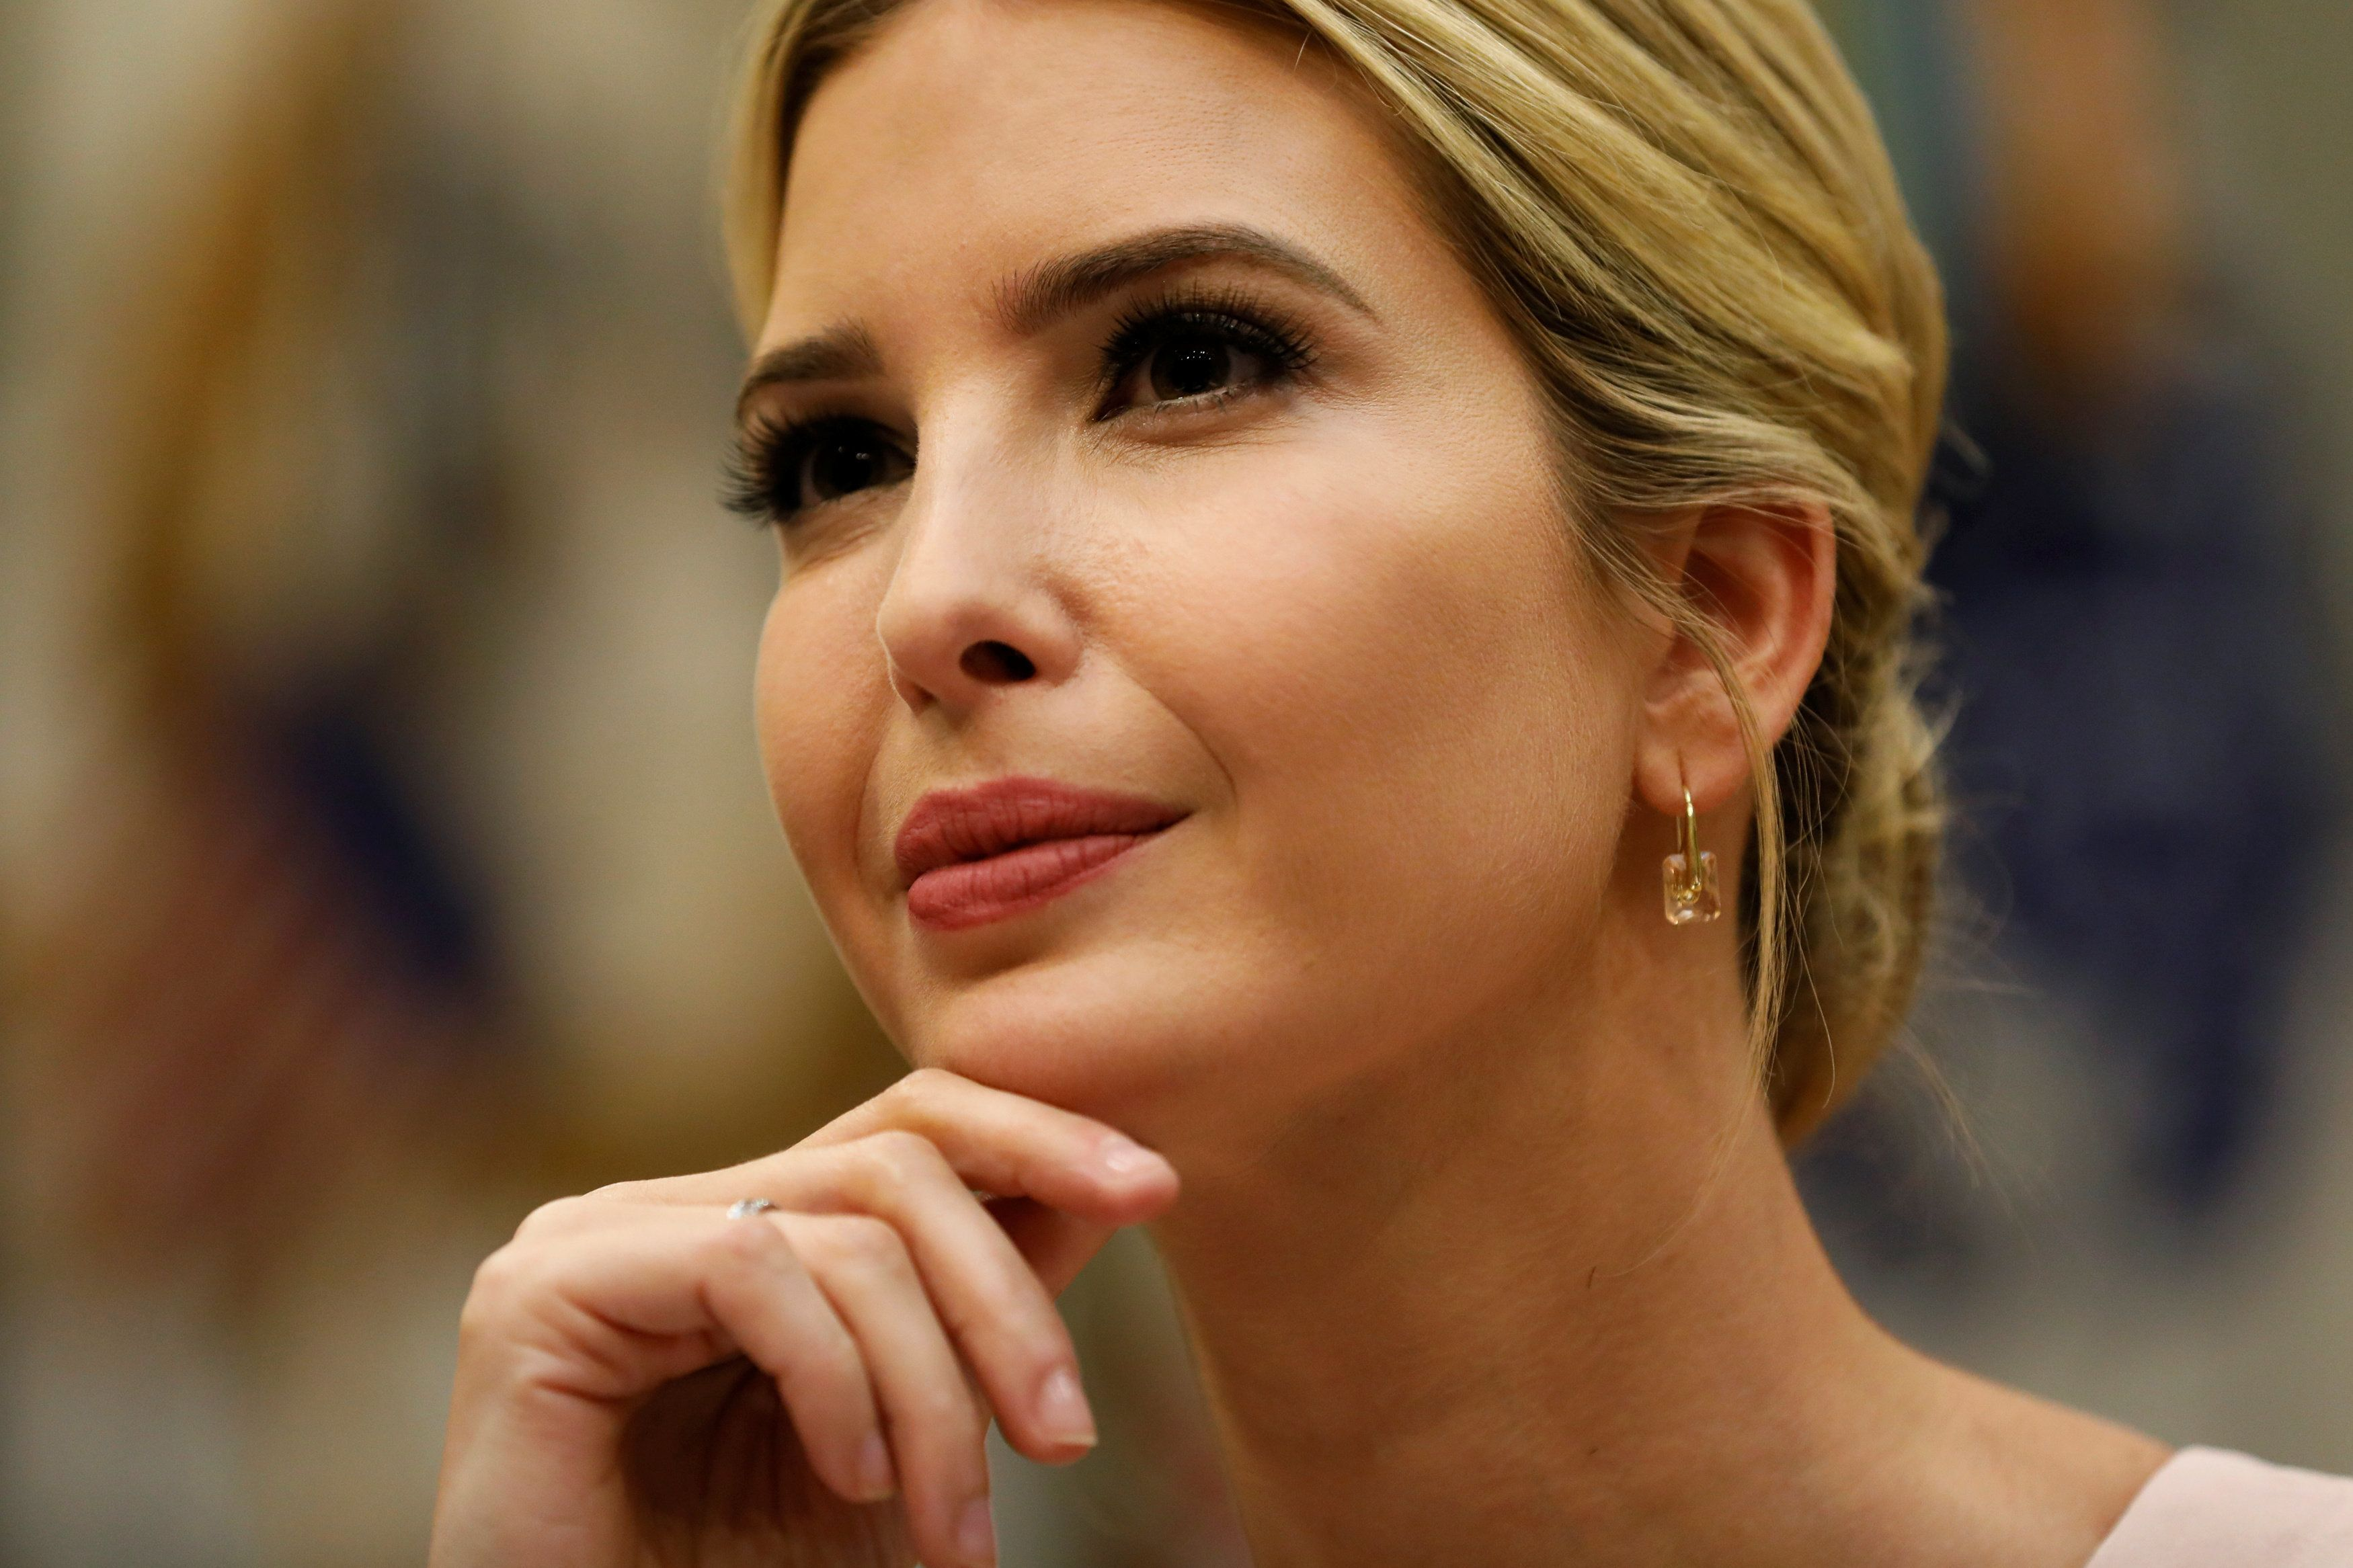 White House senior advisor Ivanka Trump leads a listening session with military spouses at the White House in Washington, U.S. August 2, 2017.  REUTERS/Jonathan Ernst